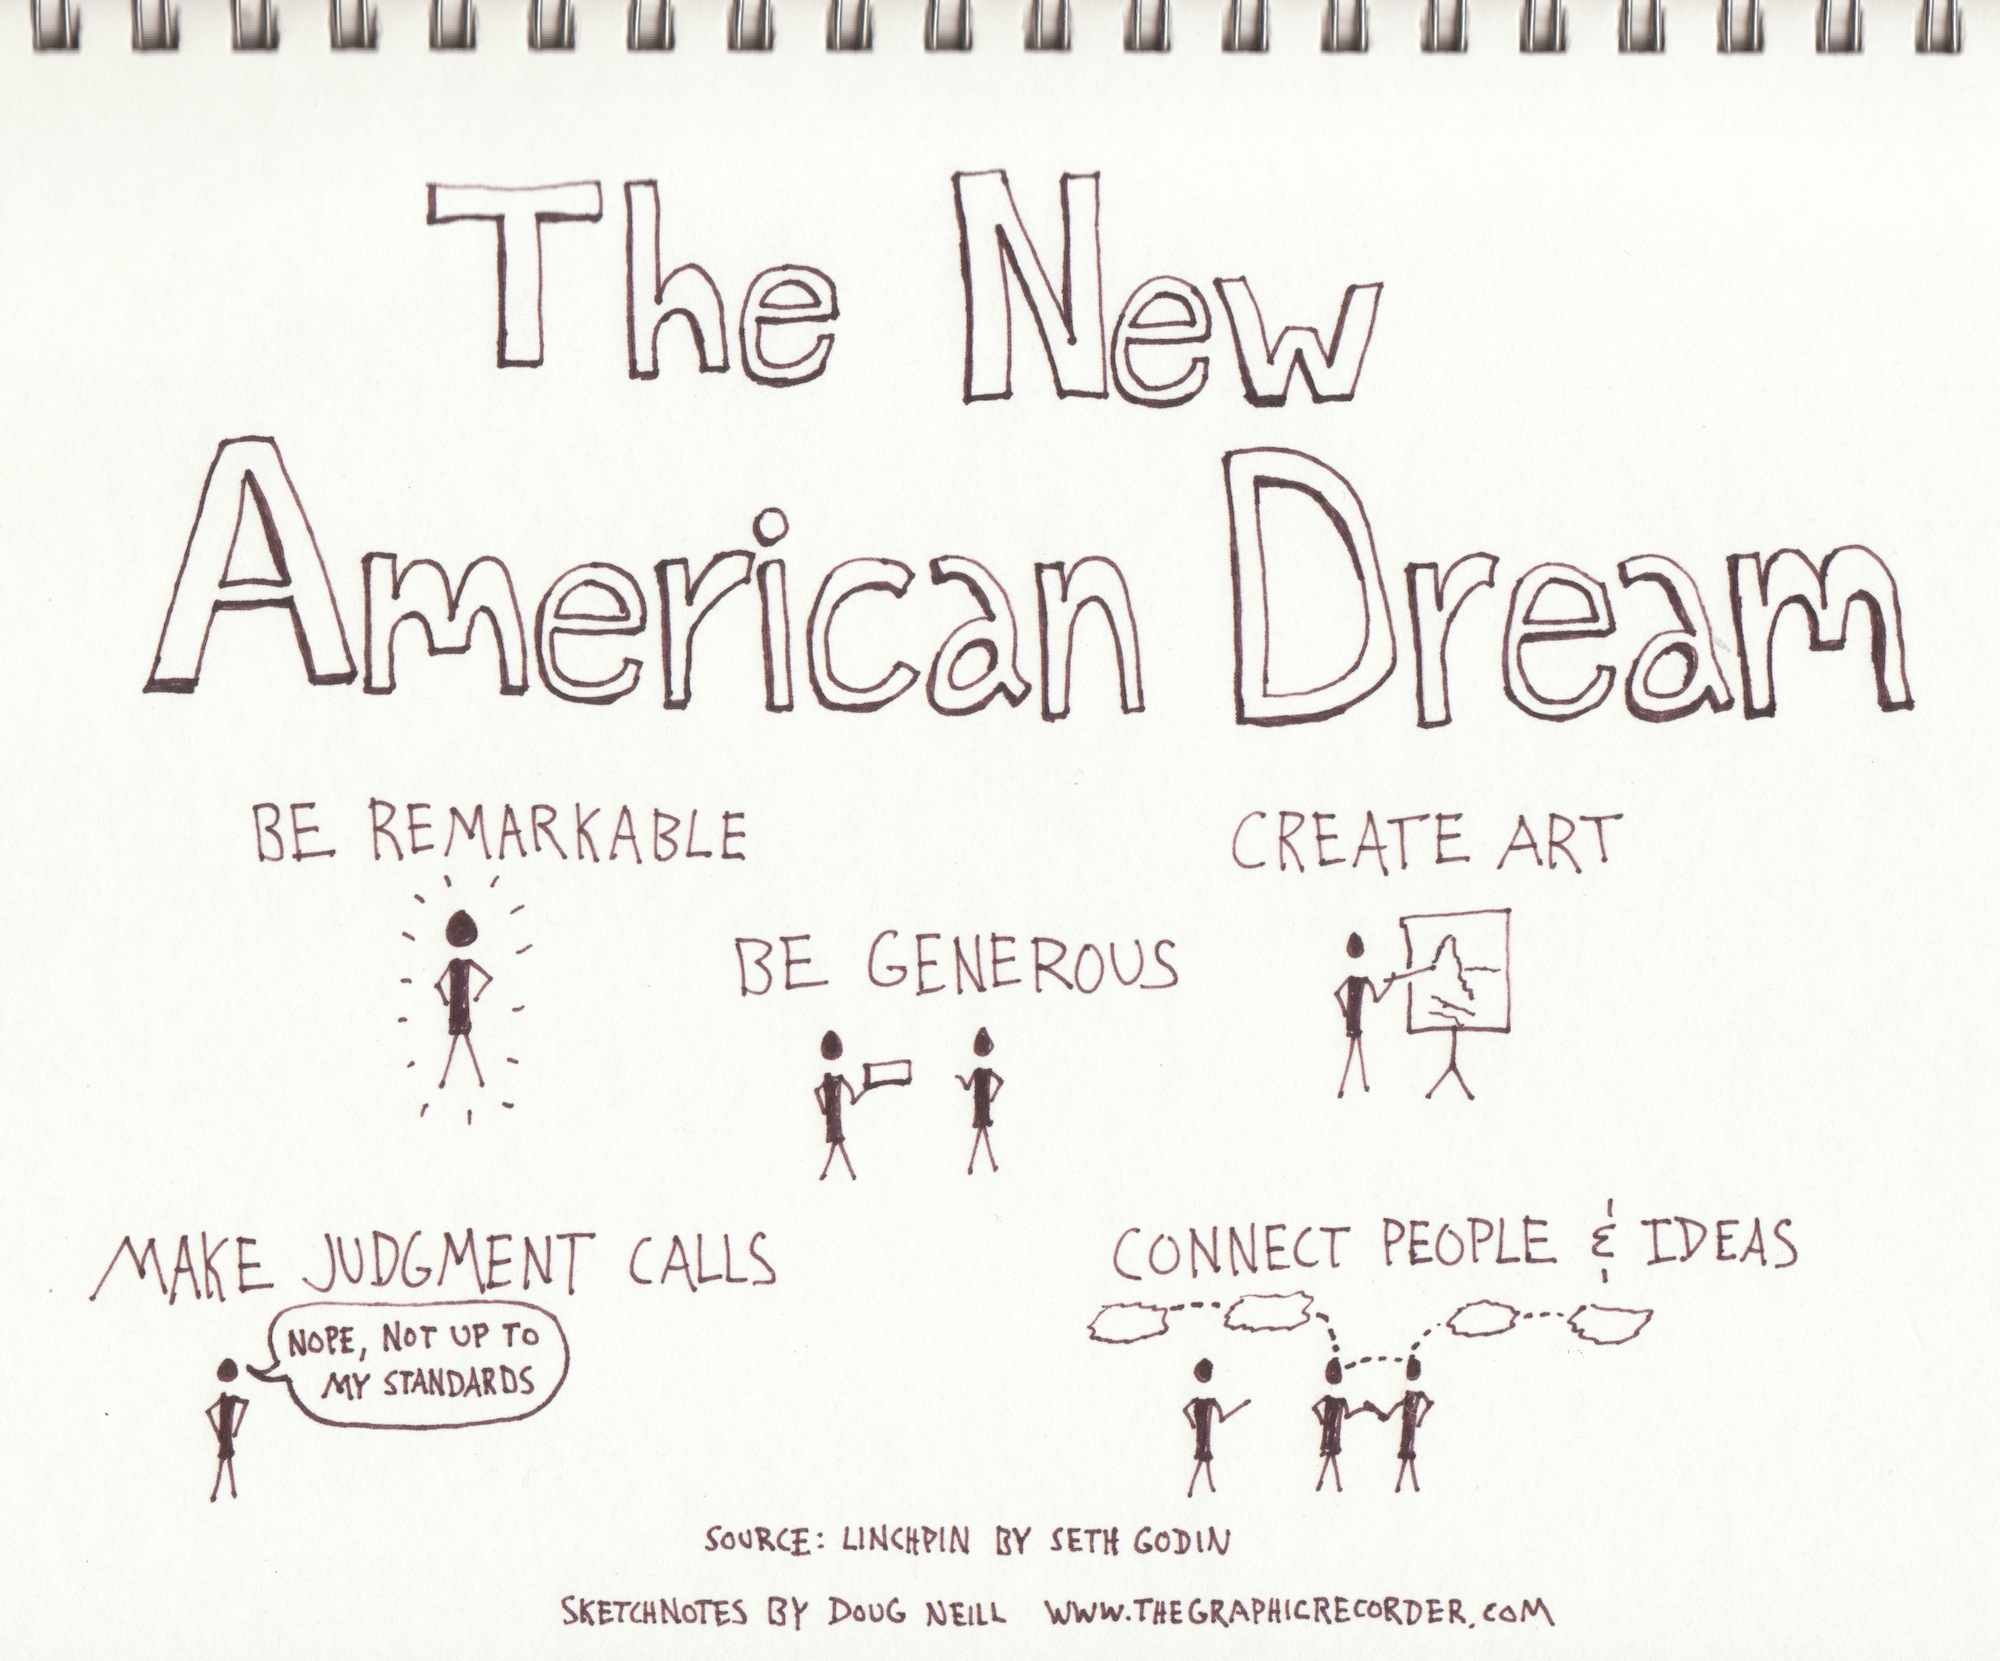 american dream today essay American dream faces harsh new reality the idea of the american dream is woven through this country's politics, music and culture it suggests a belief that hard work pays off, and that children will have a better life than their parents.